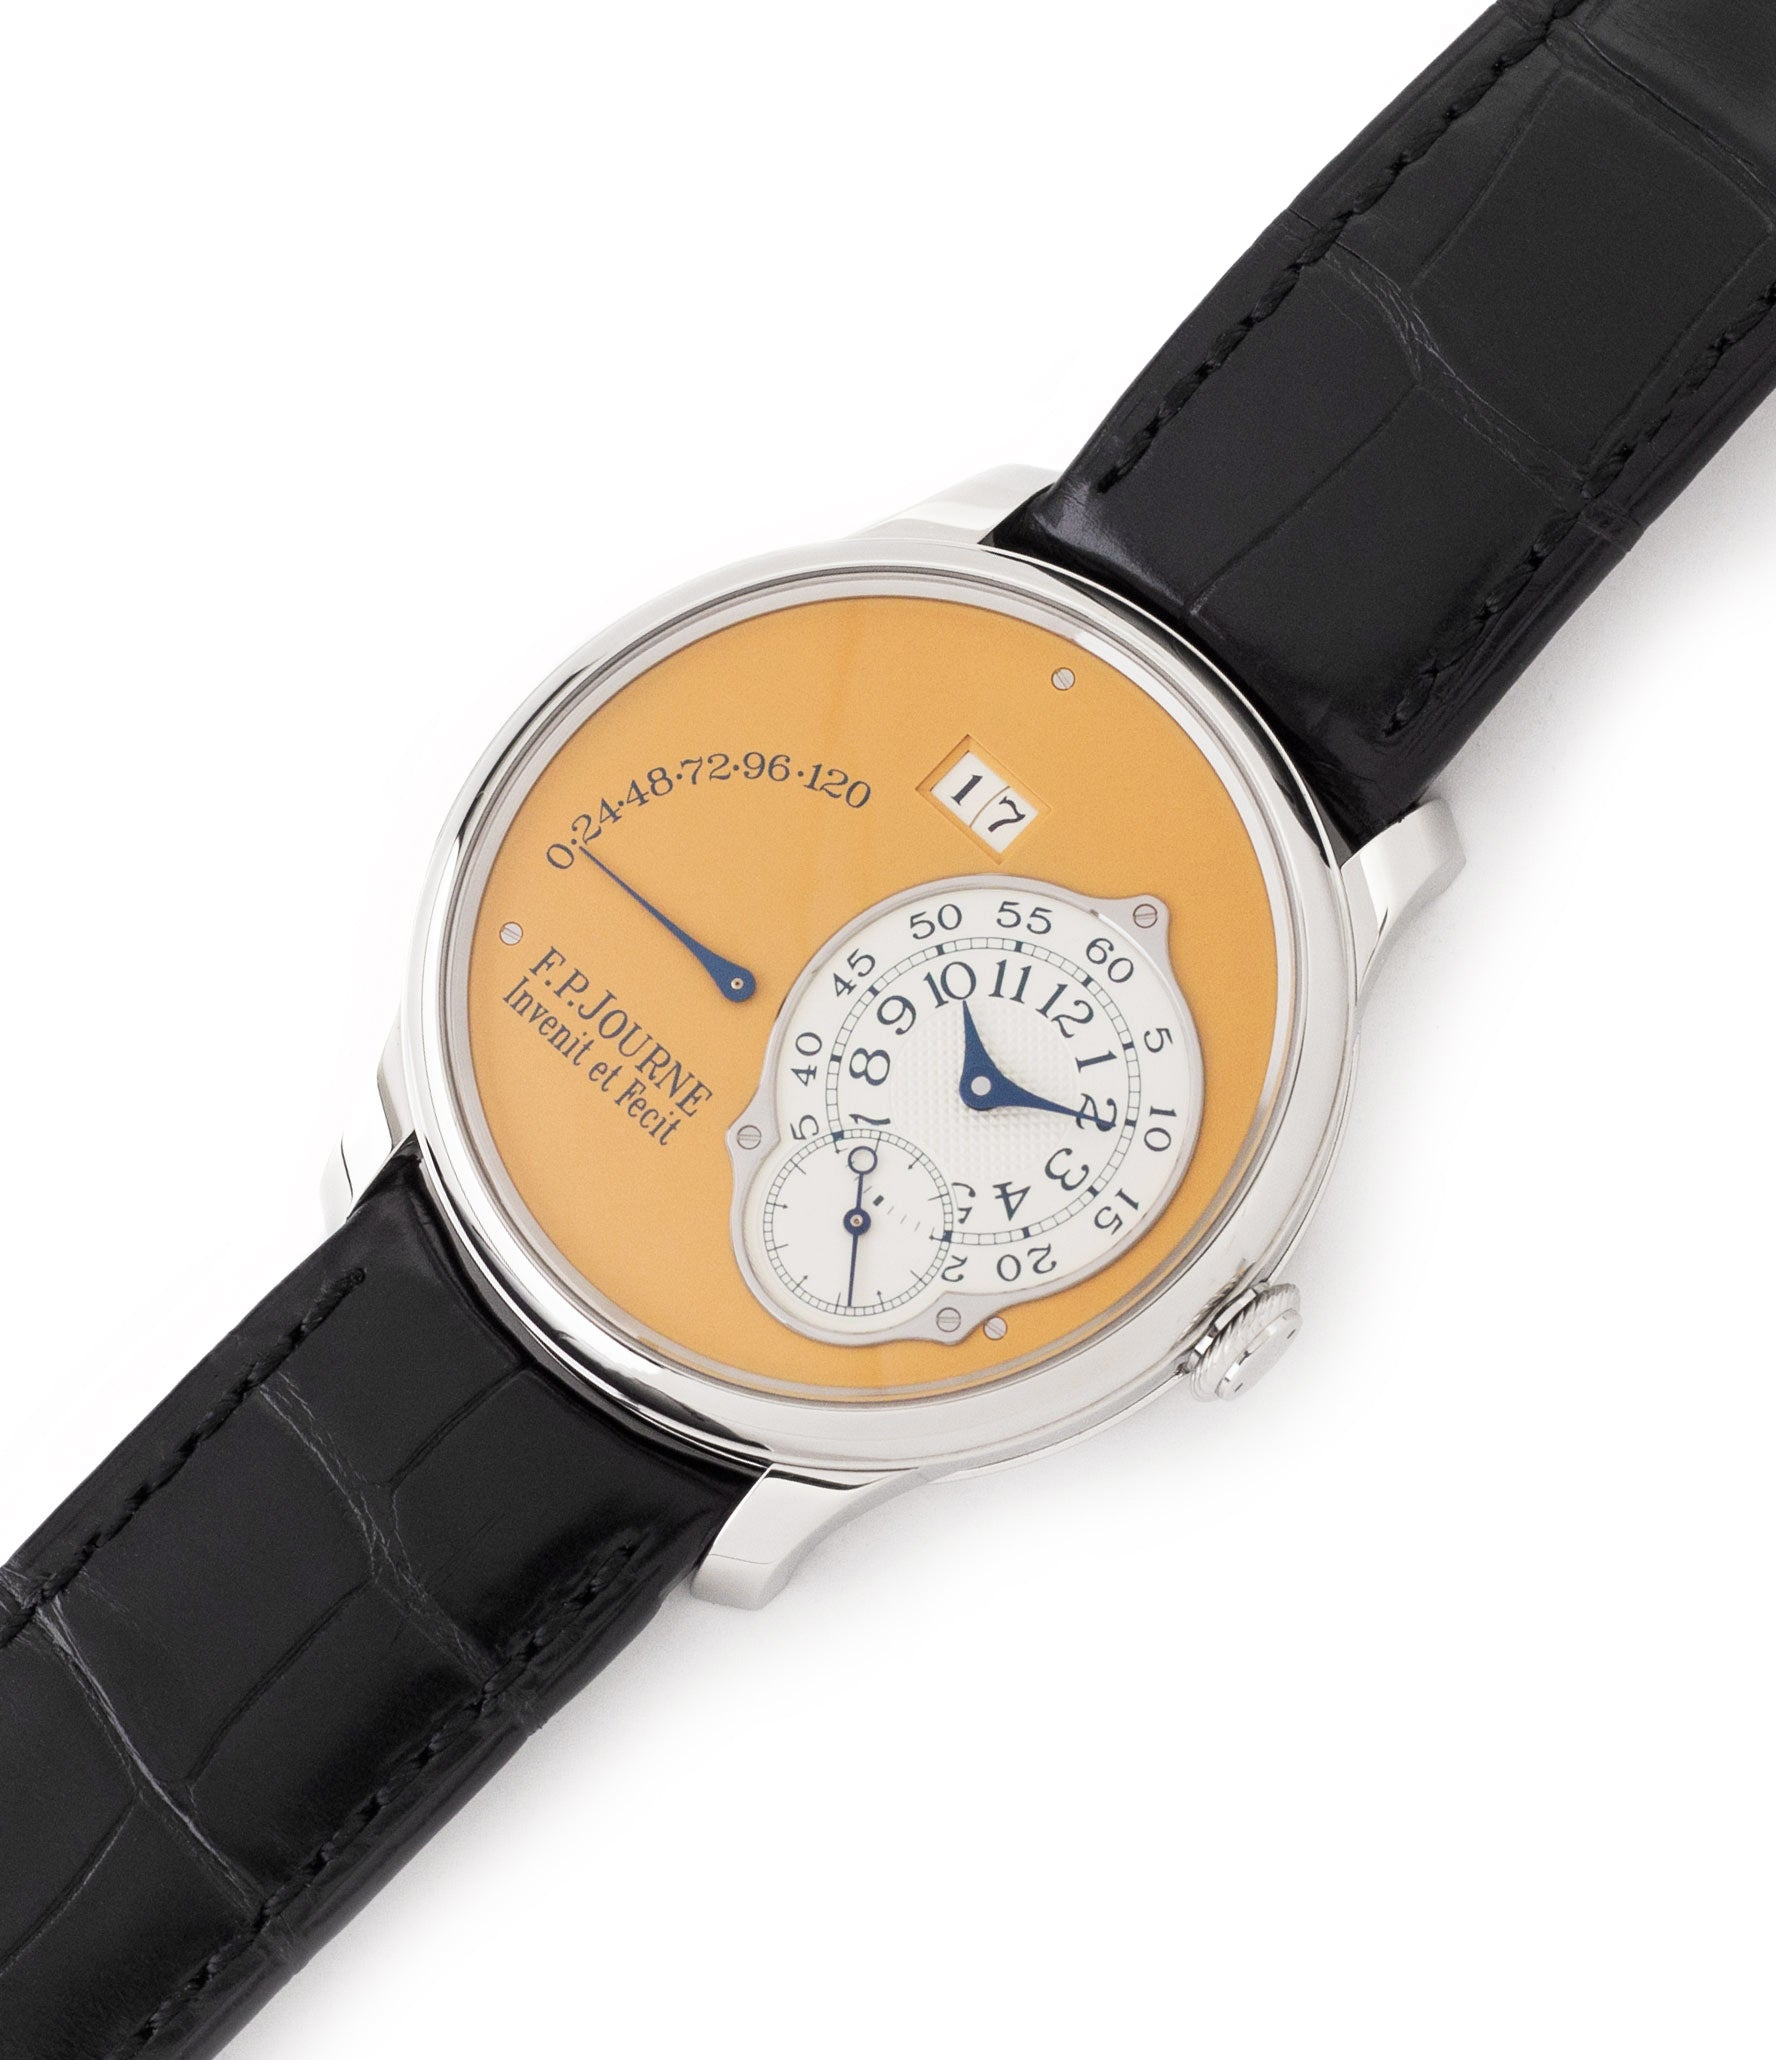 buy preowned F. P. Journe Octa Automatique 38 mm steel limited edition dress watch for sale online at A Collected Man London UK approved seller of independent watchmakers